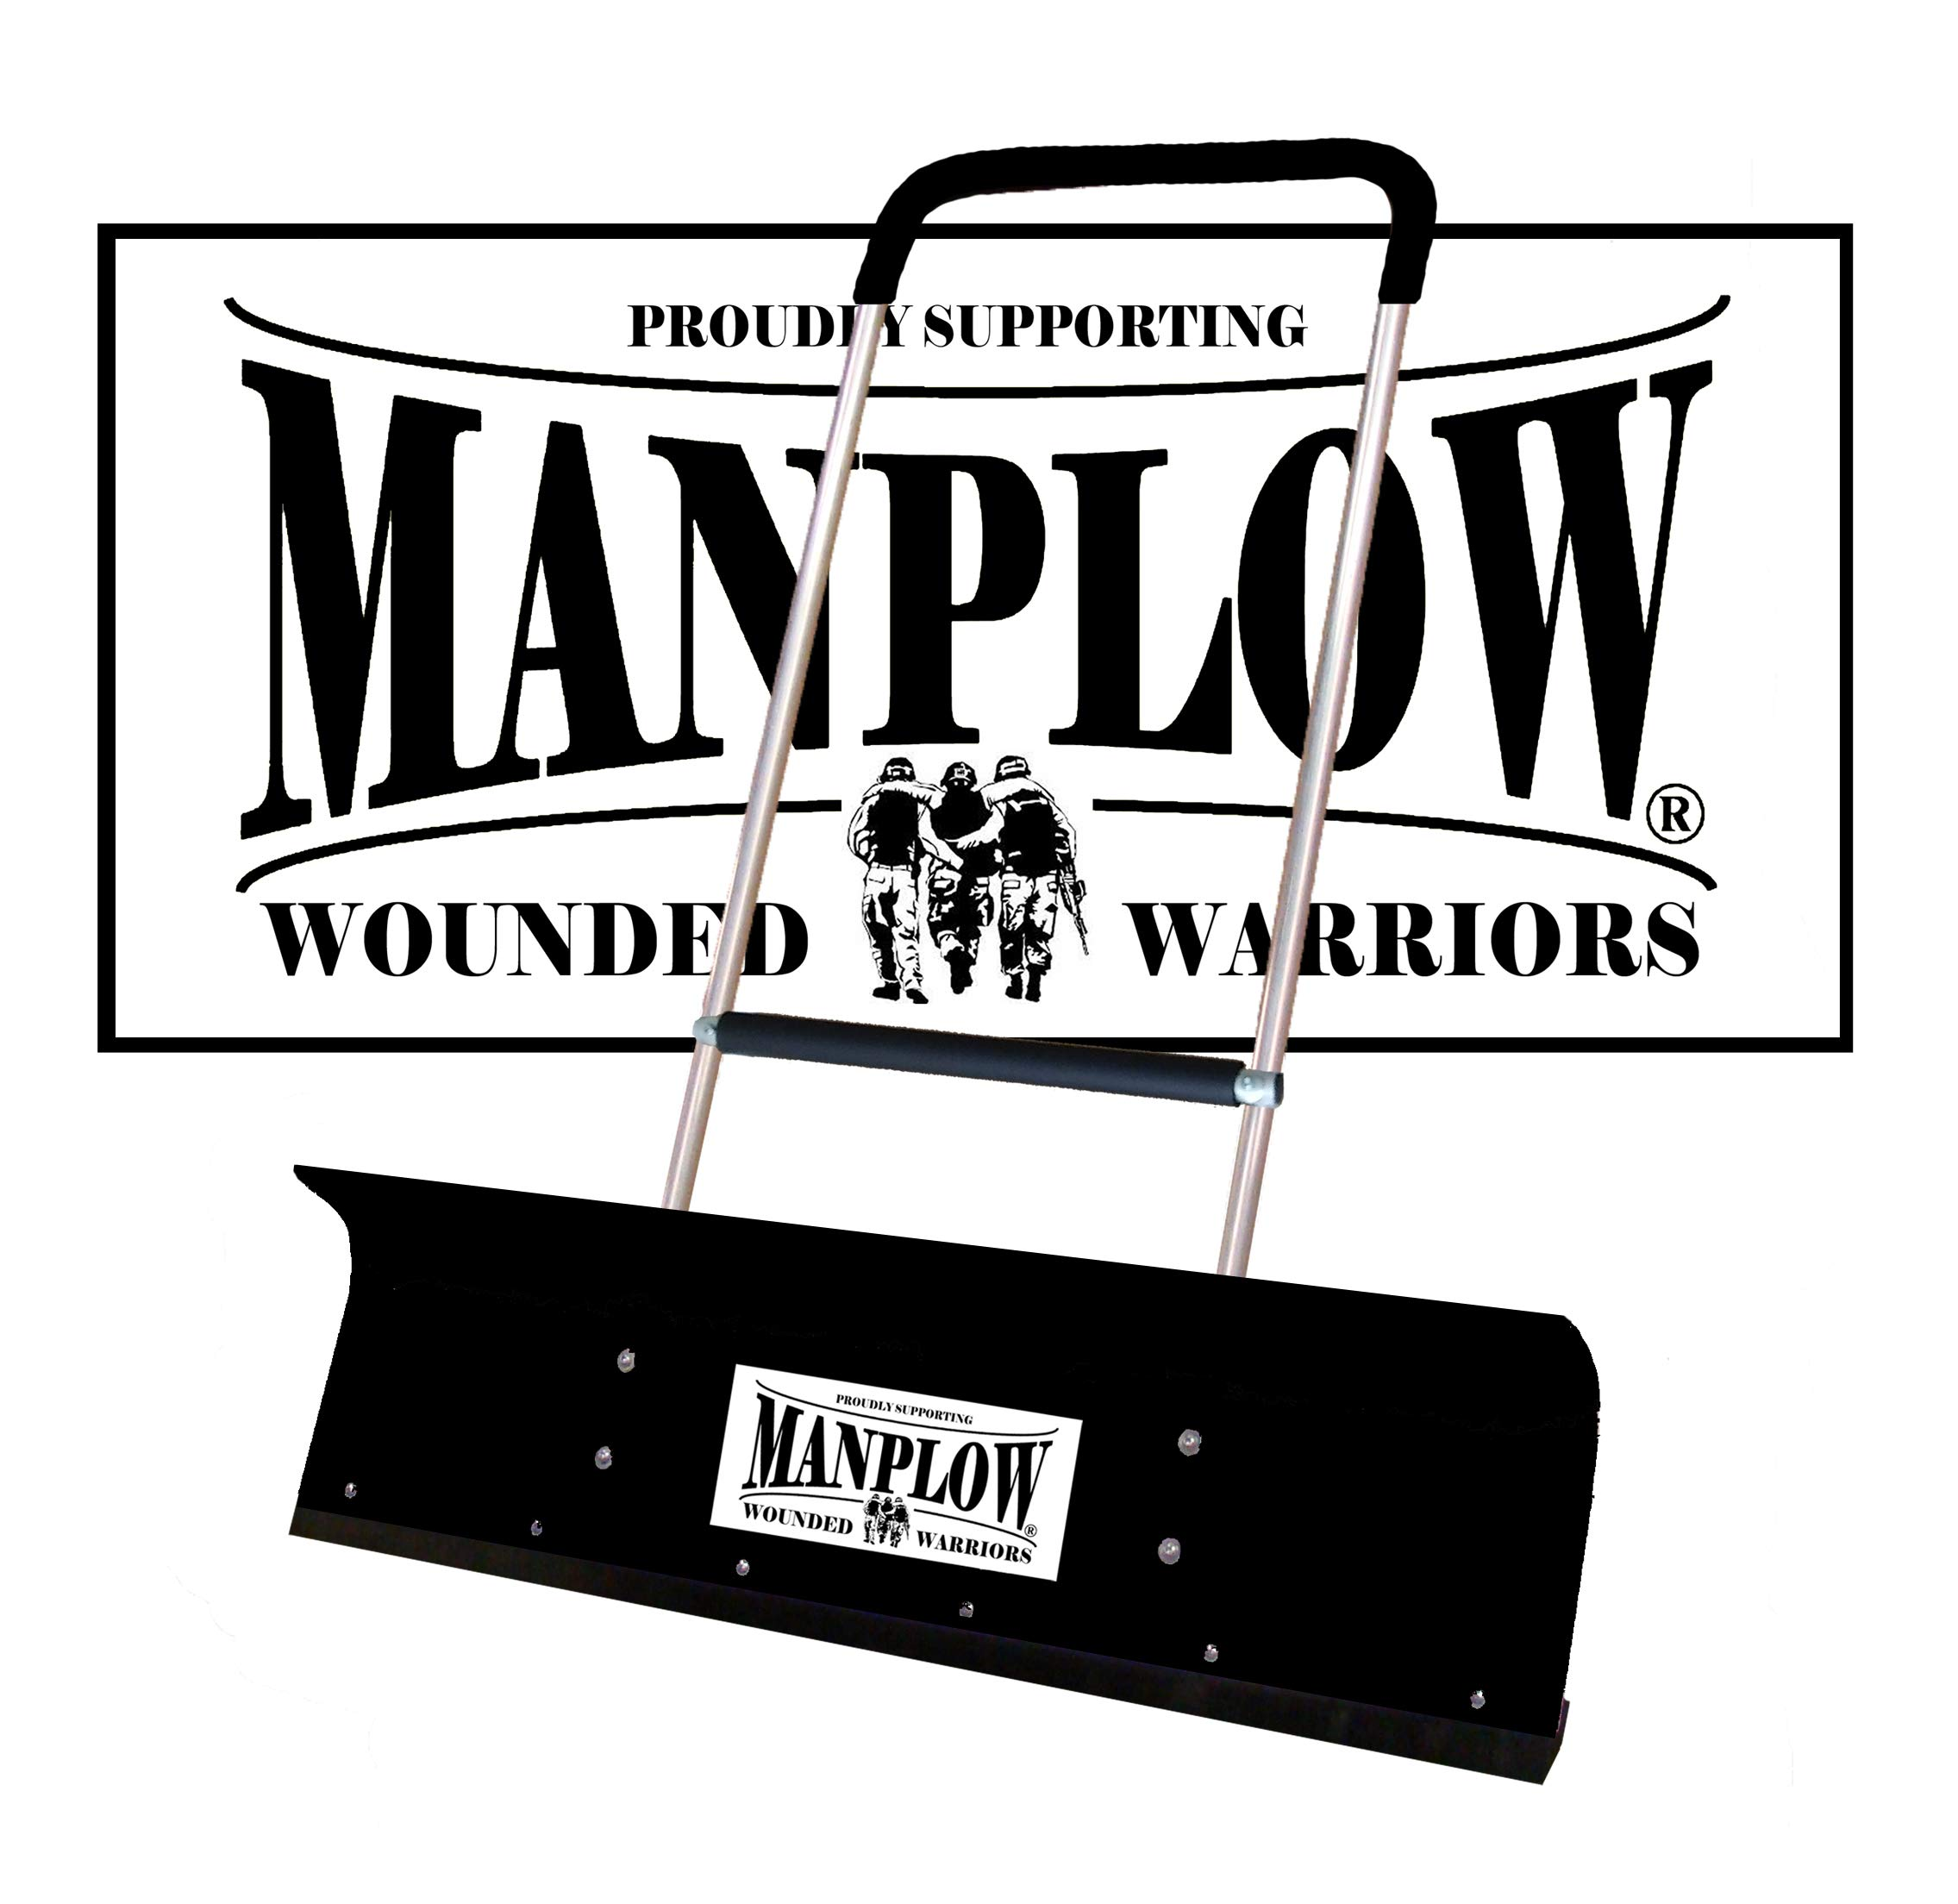 Manplow PRO42 Wounded Warrior Special Release w/Grab Bar by Manplow